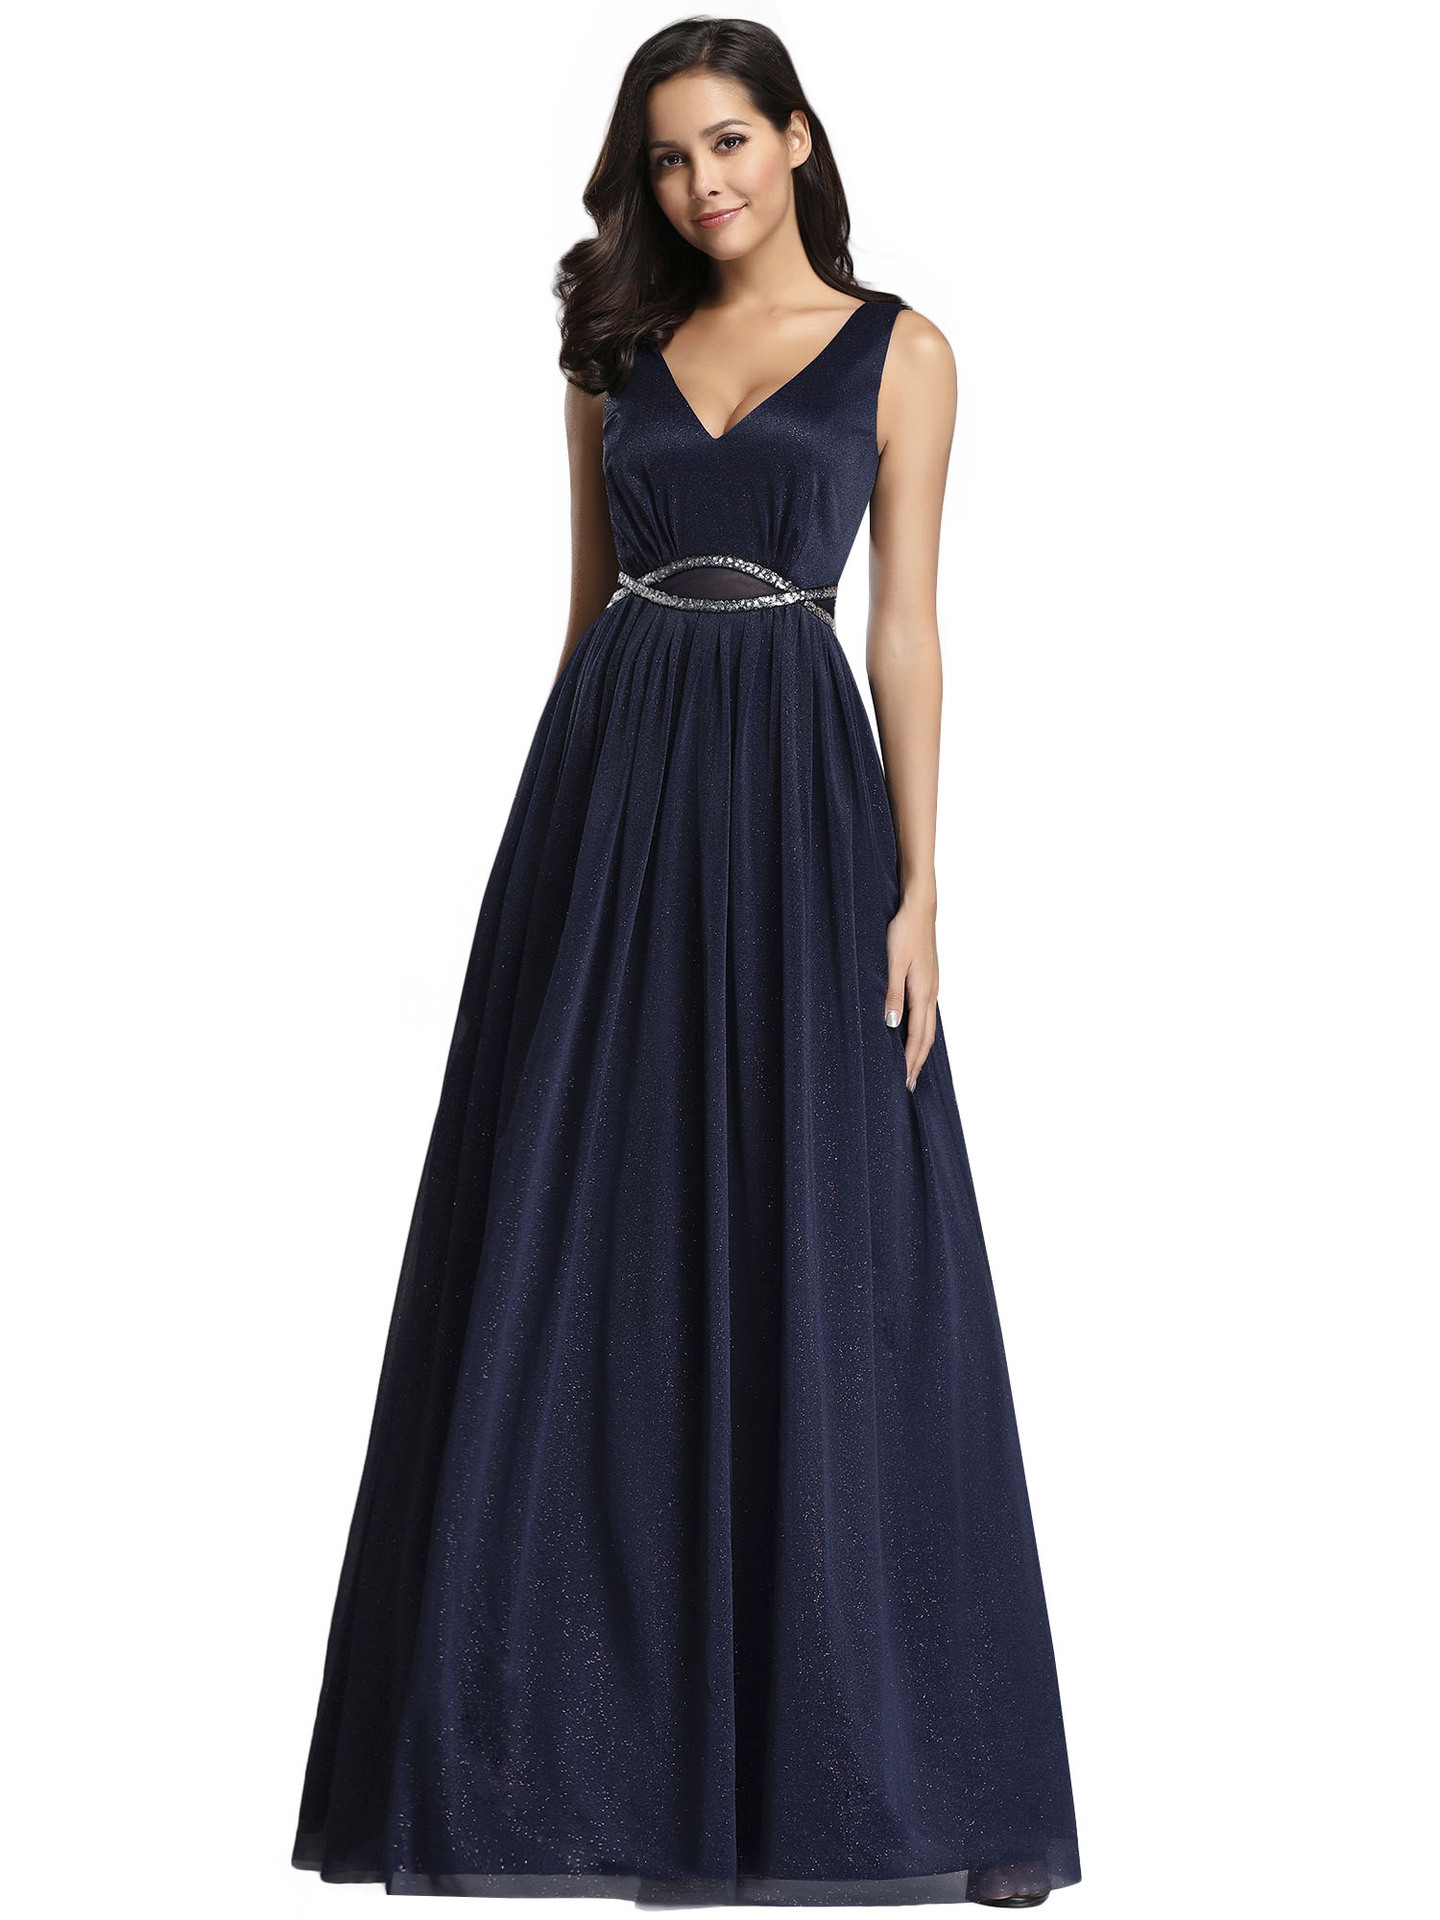 OLLYMURS New Elegant Woman Evening Gown Simple Dark V Sleeveless Collar Navy Evening Dress Suitable For Formal Parties